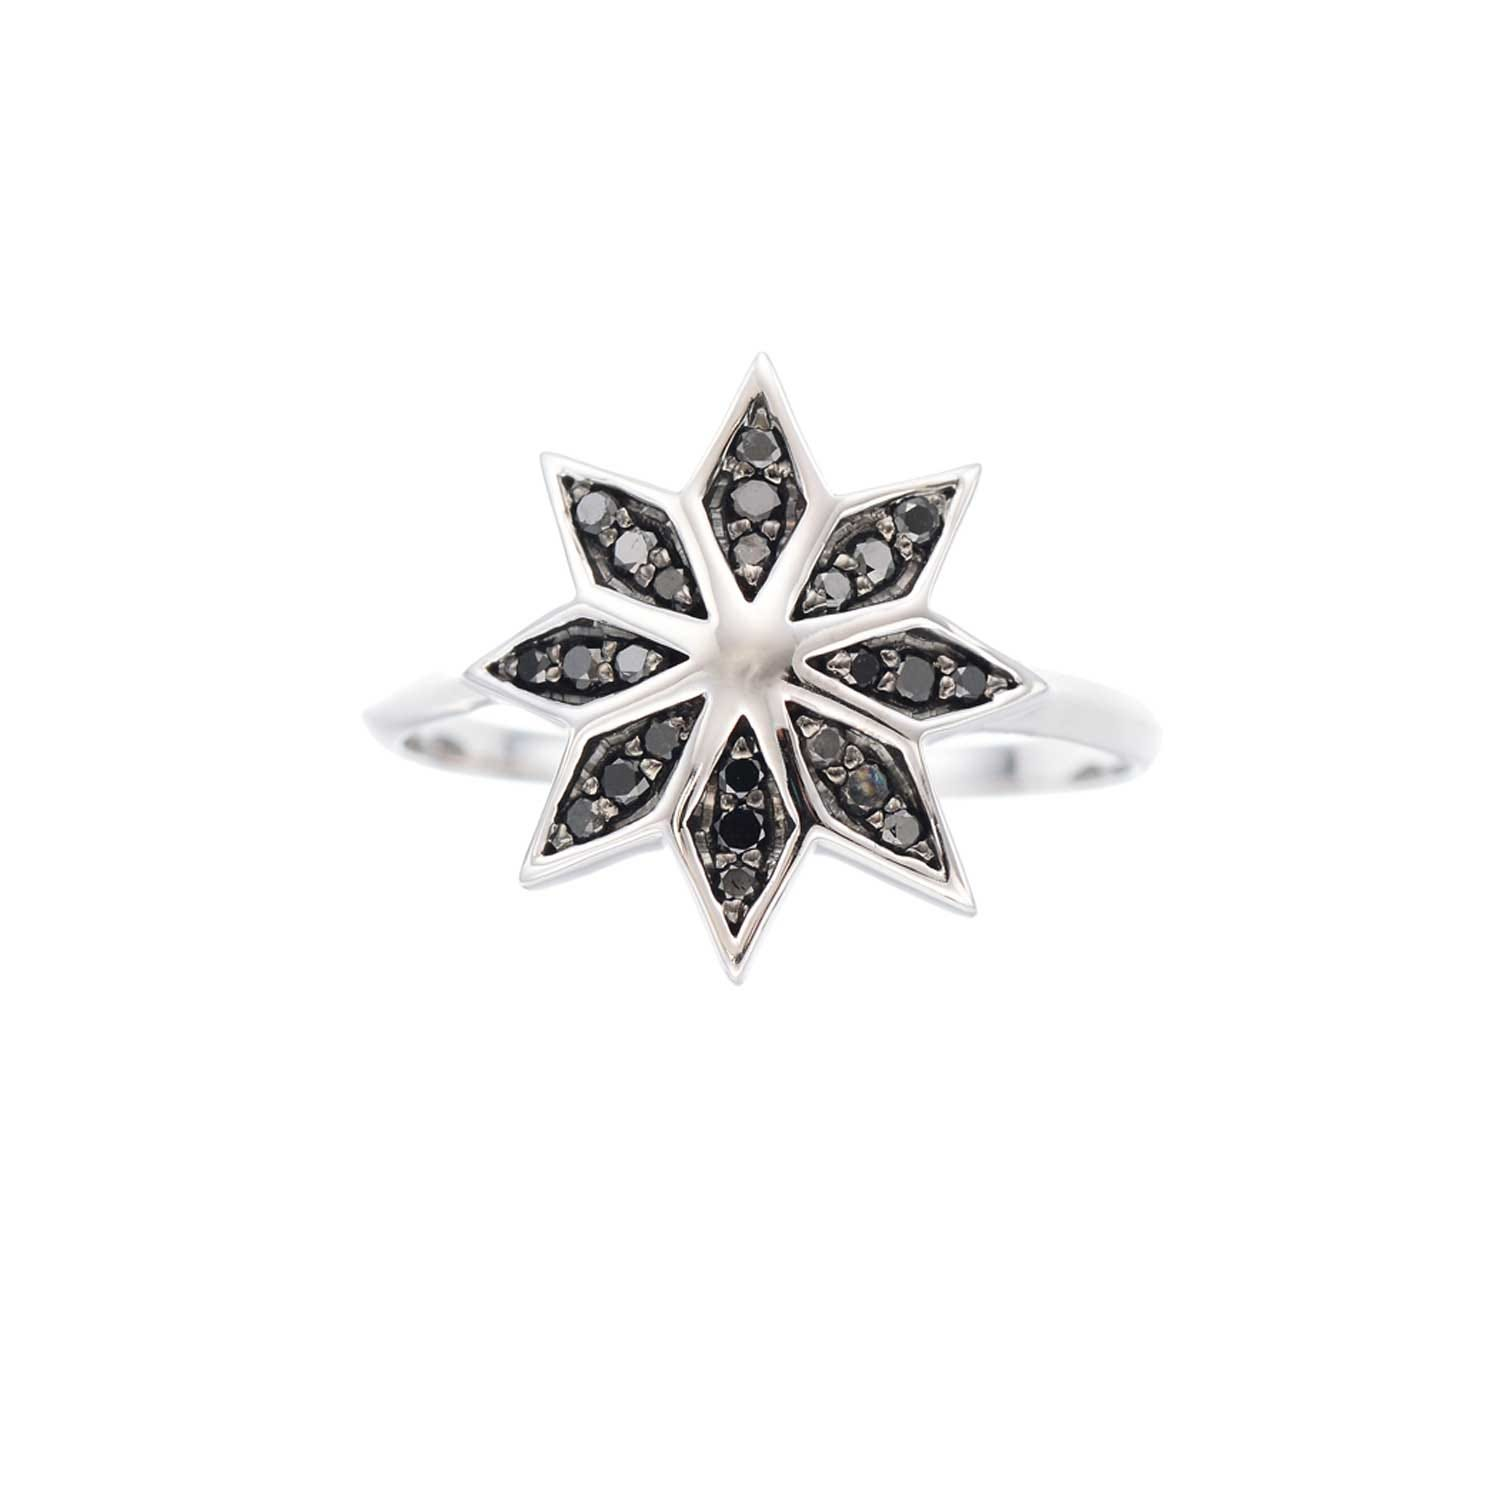 Lakshmi Ring. 9k White Gold / Black Diamond